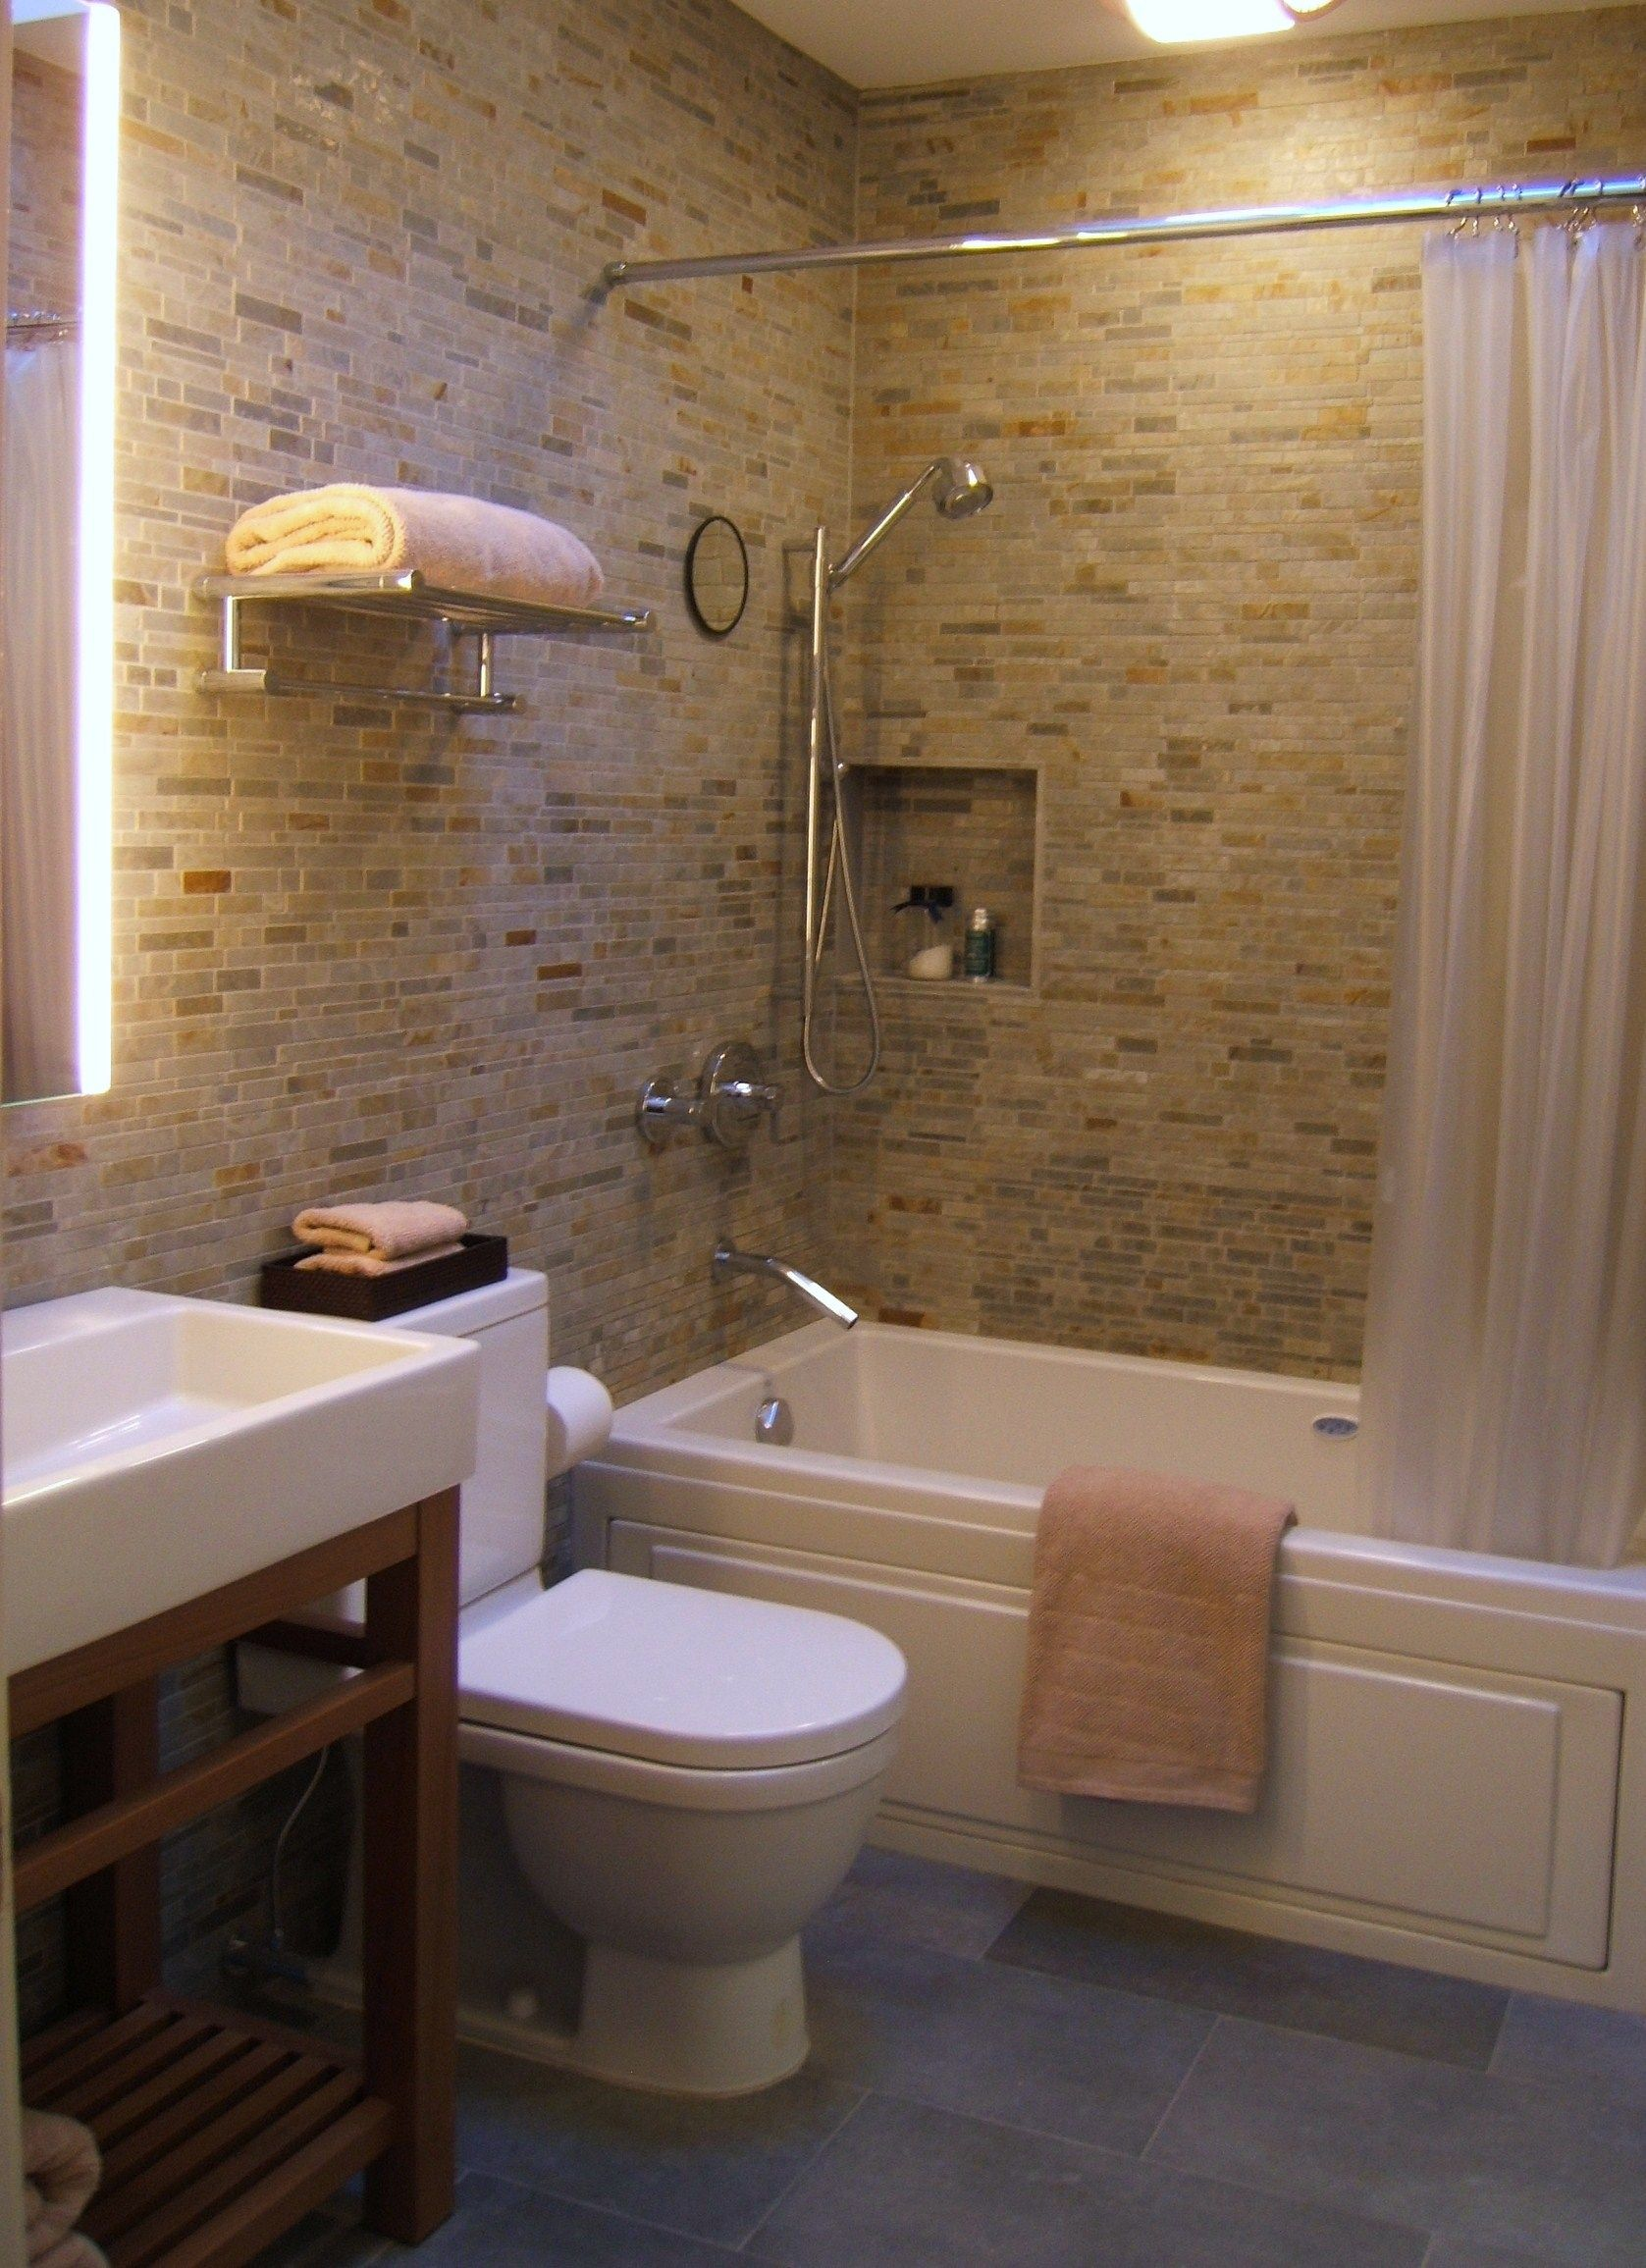 Small bathroom designs south africa small bath for Small lavatory designs